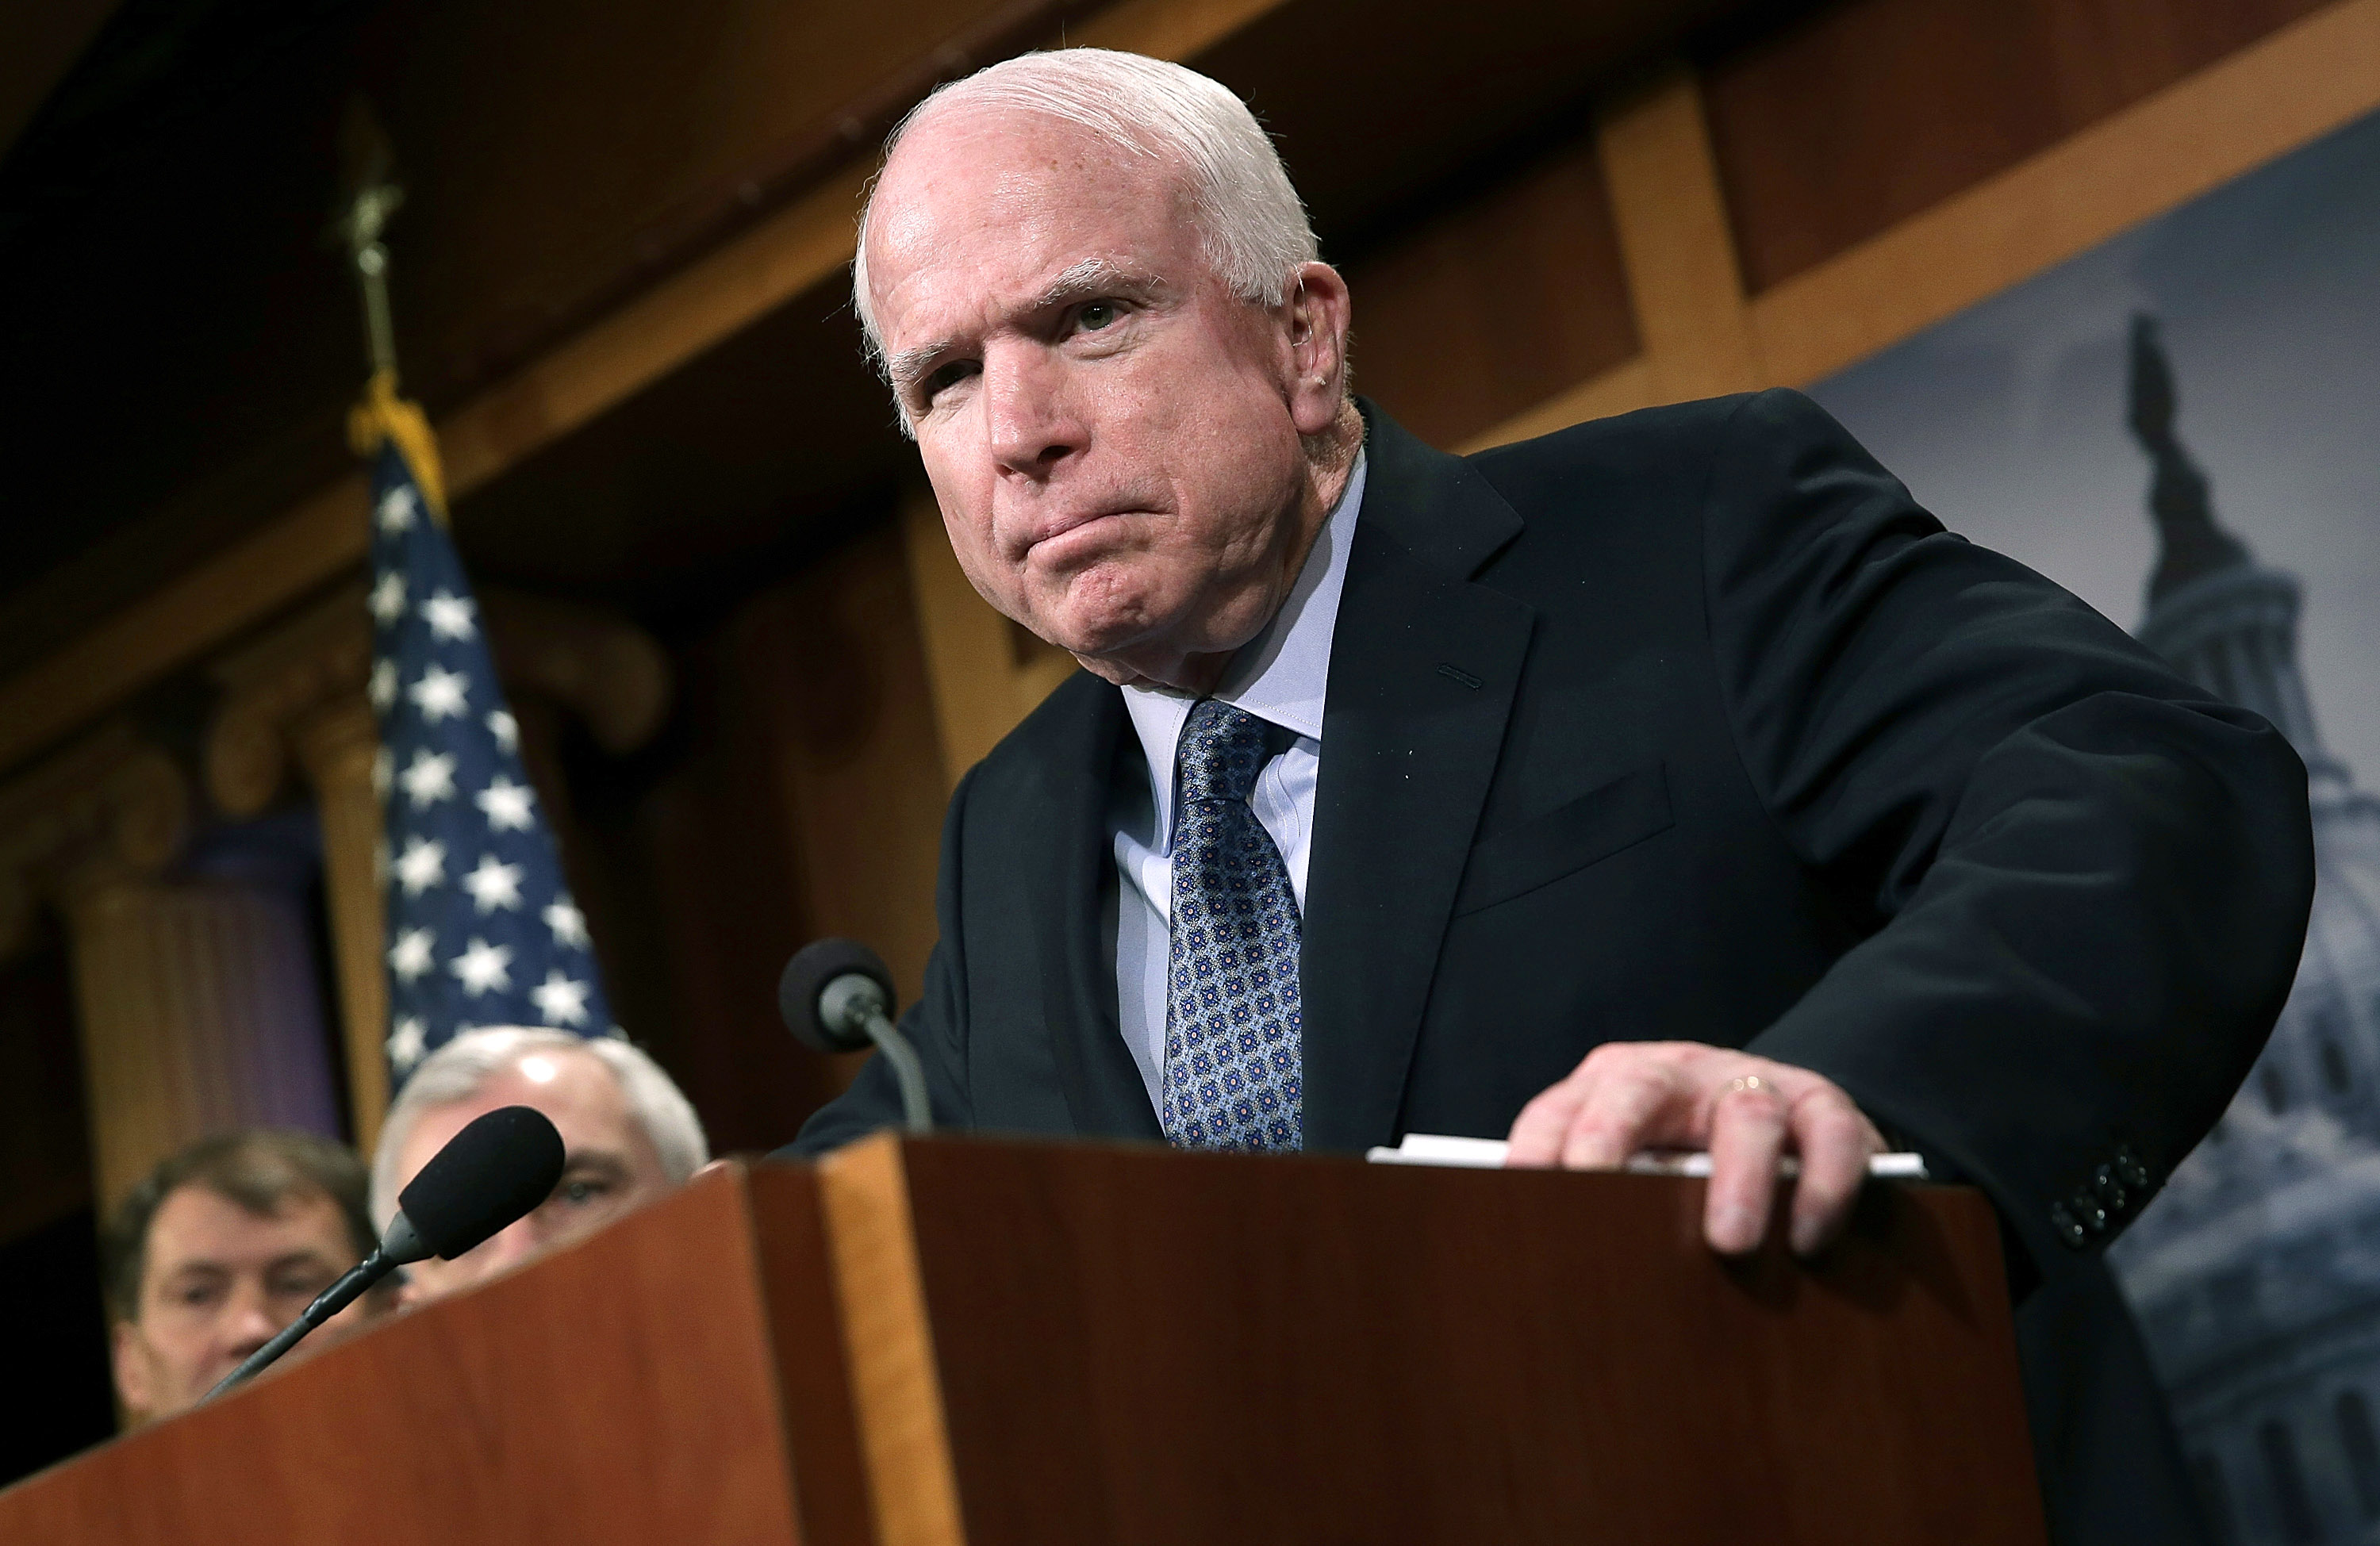 Sen. John McCain speaks during a press conference at the U.S. Capitol on February 5, 2015, in Washington, D.C.